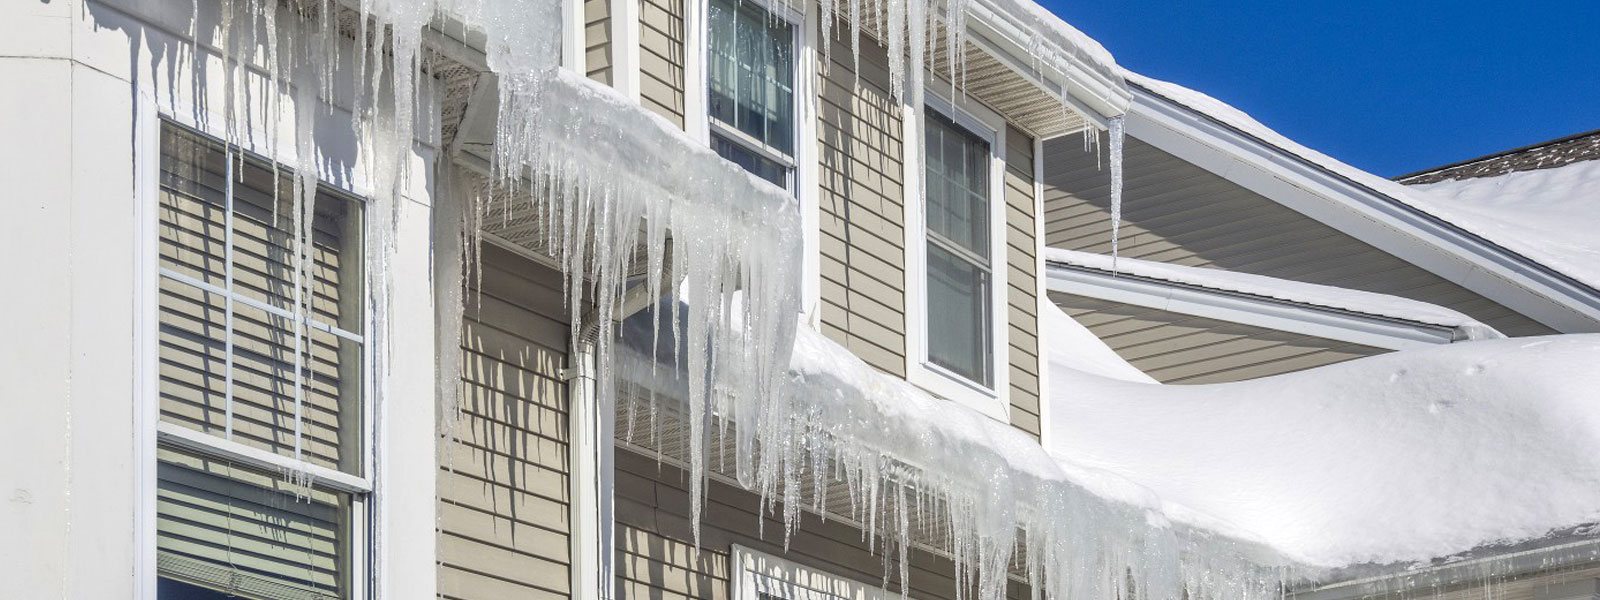 Don't Let Sagging Gutters Ruin Your Curb Appeal